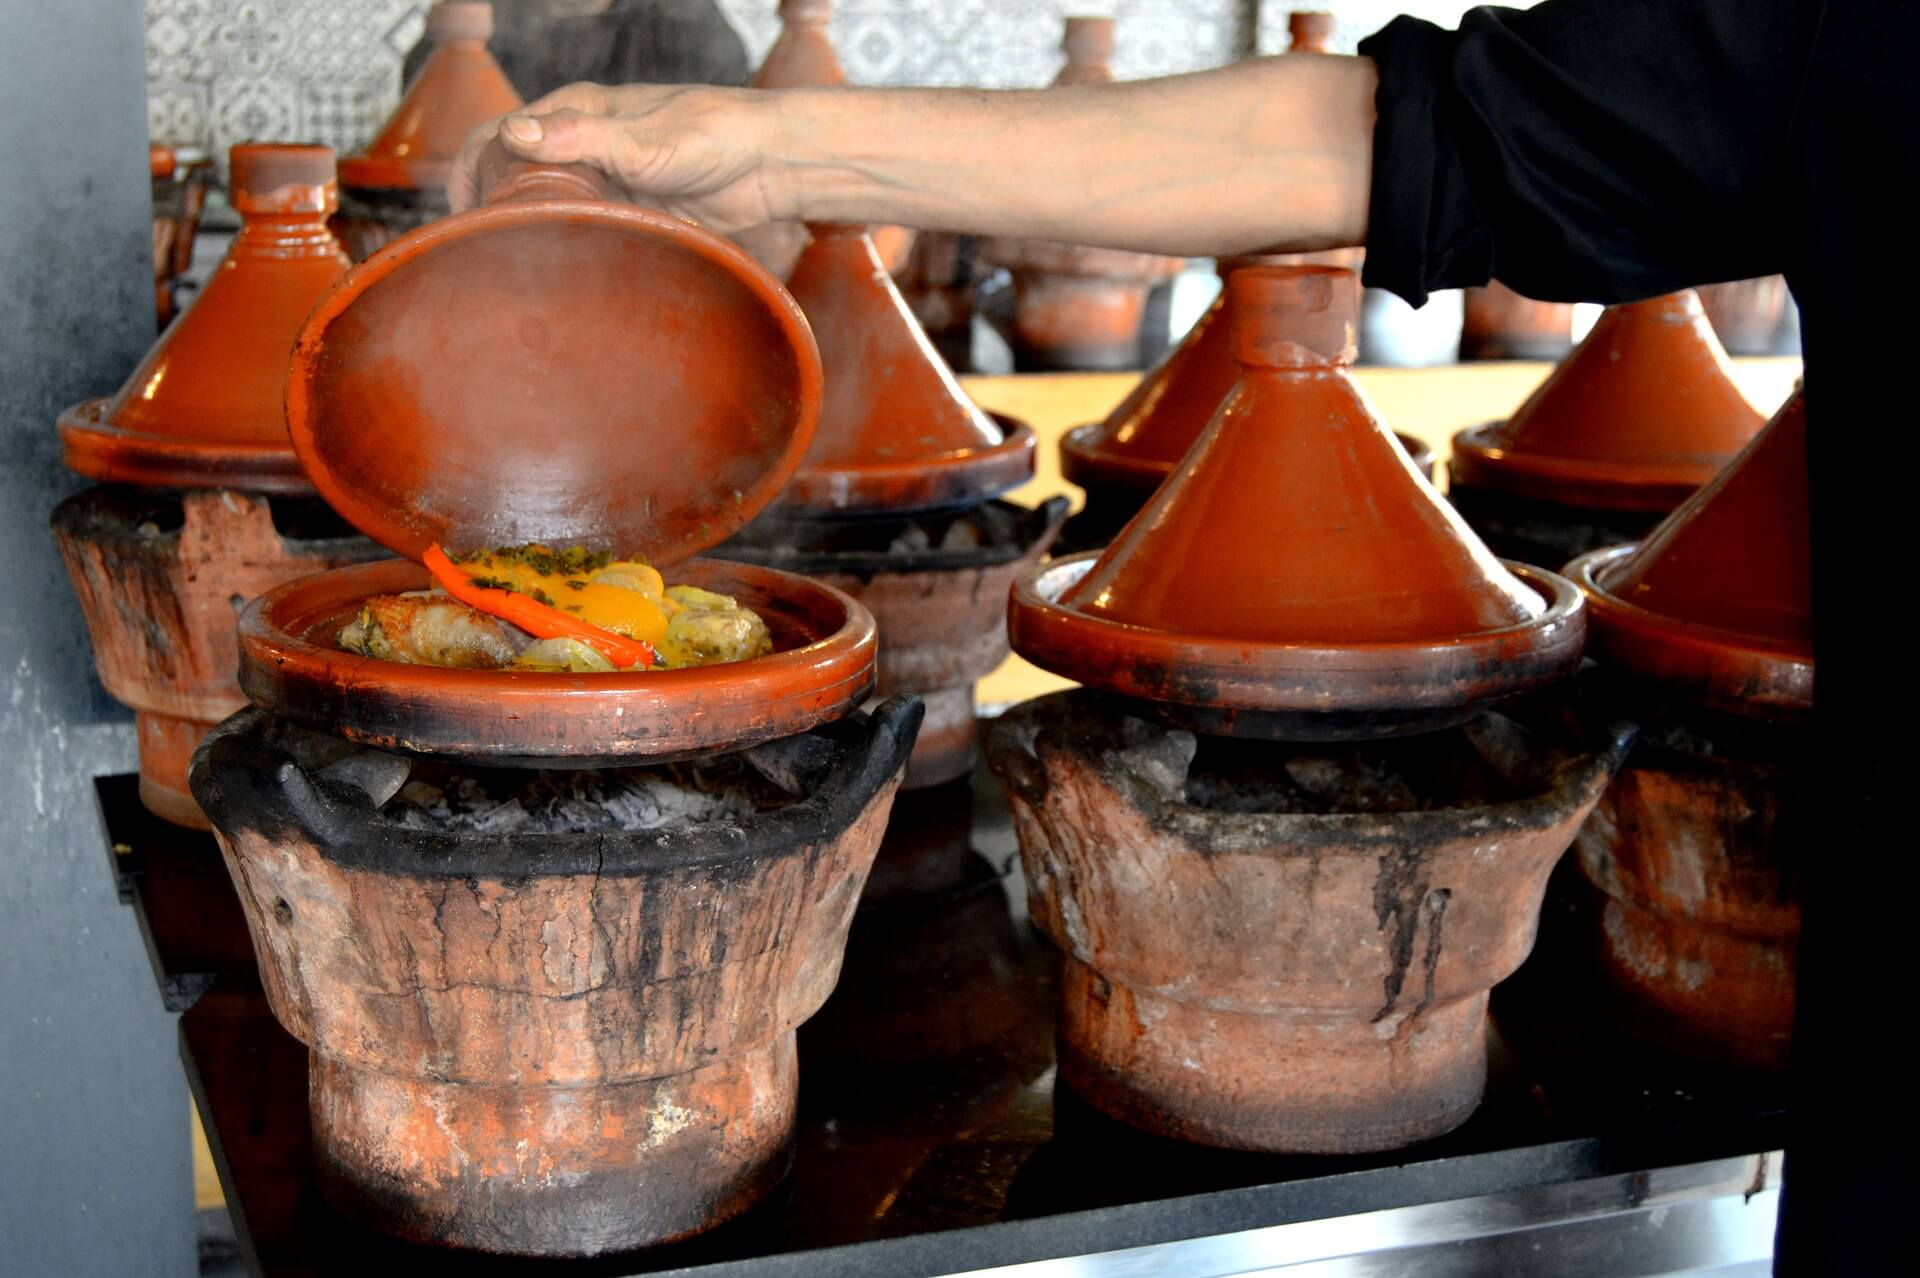 Sahara Desert Tour - Cuisine of Morocco - Traditional and Popular Dishes